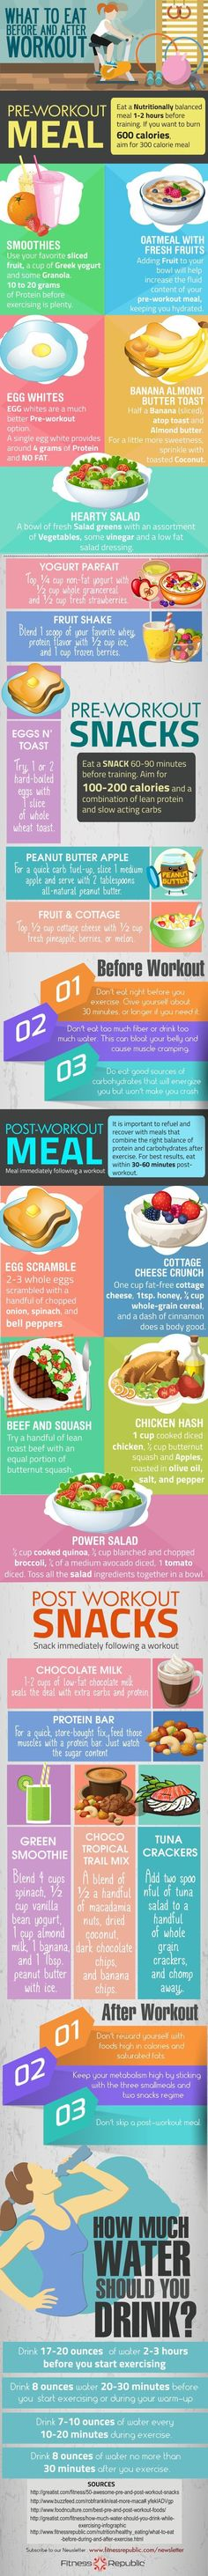 use this helpful chart for pre and post workout meals and snacks and helpful tips